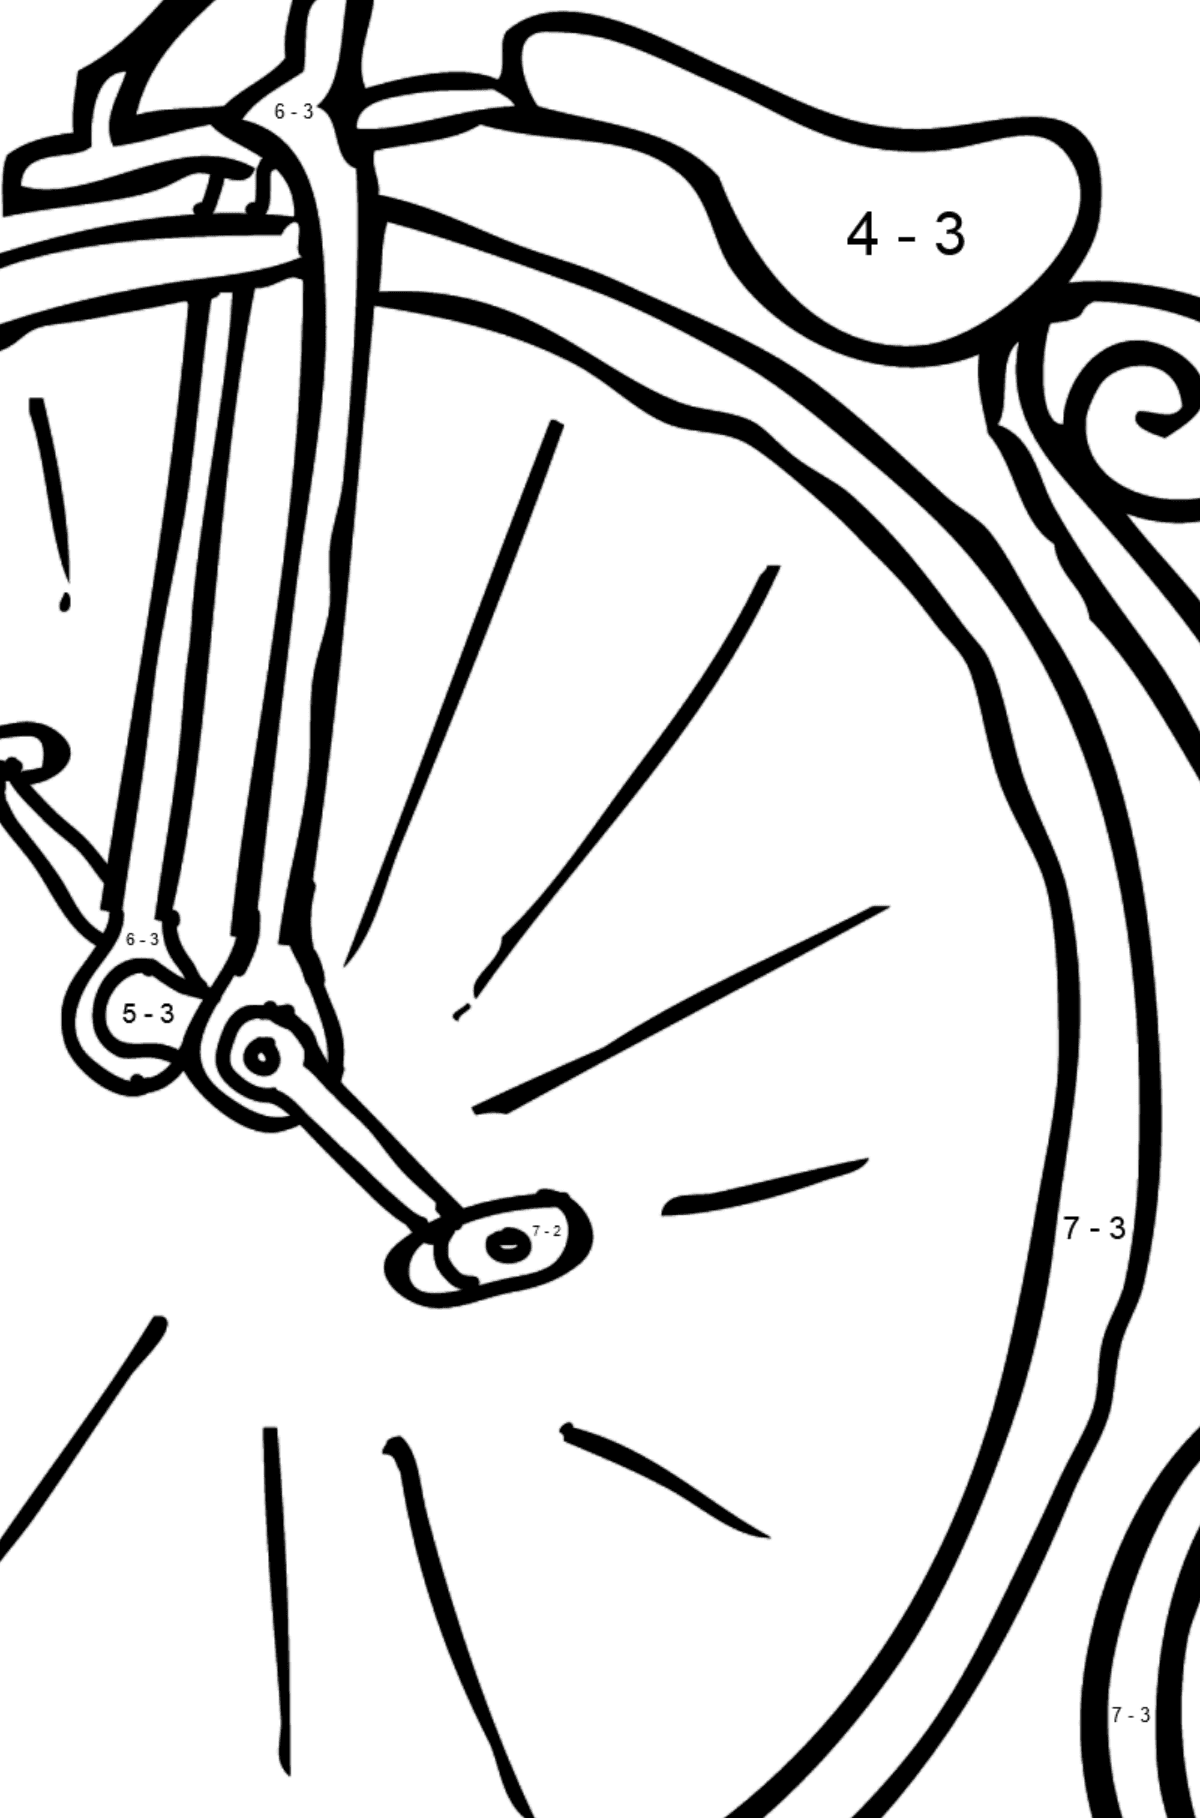 Coloring Page - A High-Wheel Cycle – Unicycle - Math Coloring - Subtraction for Kids